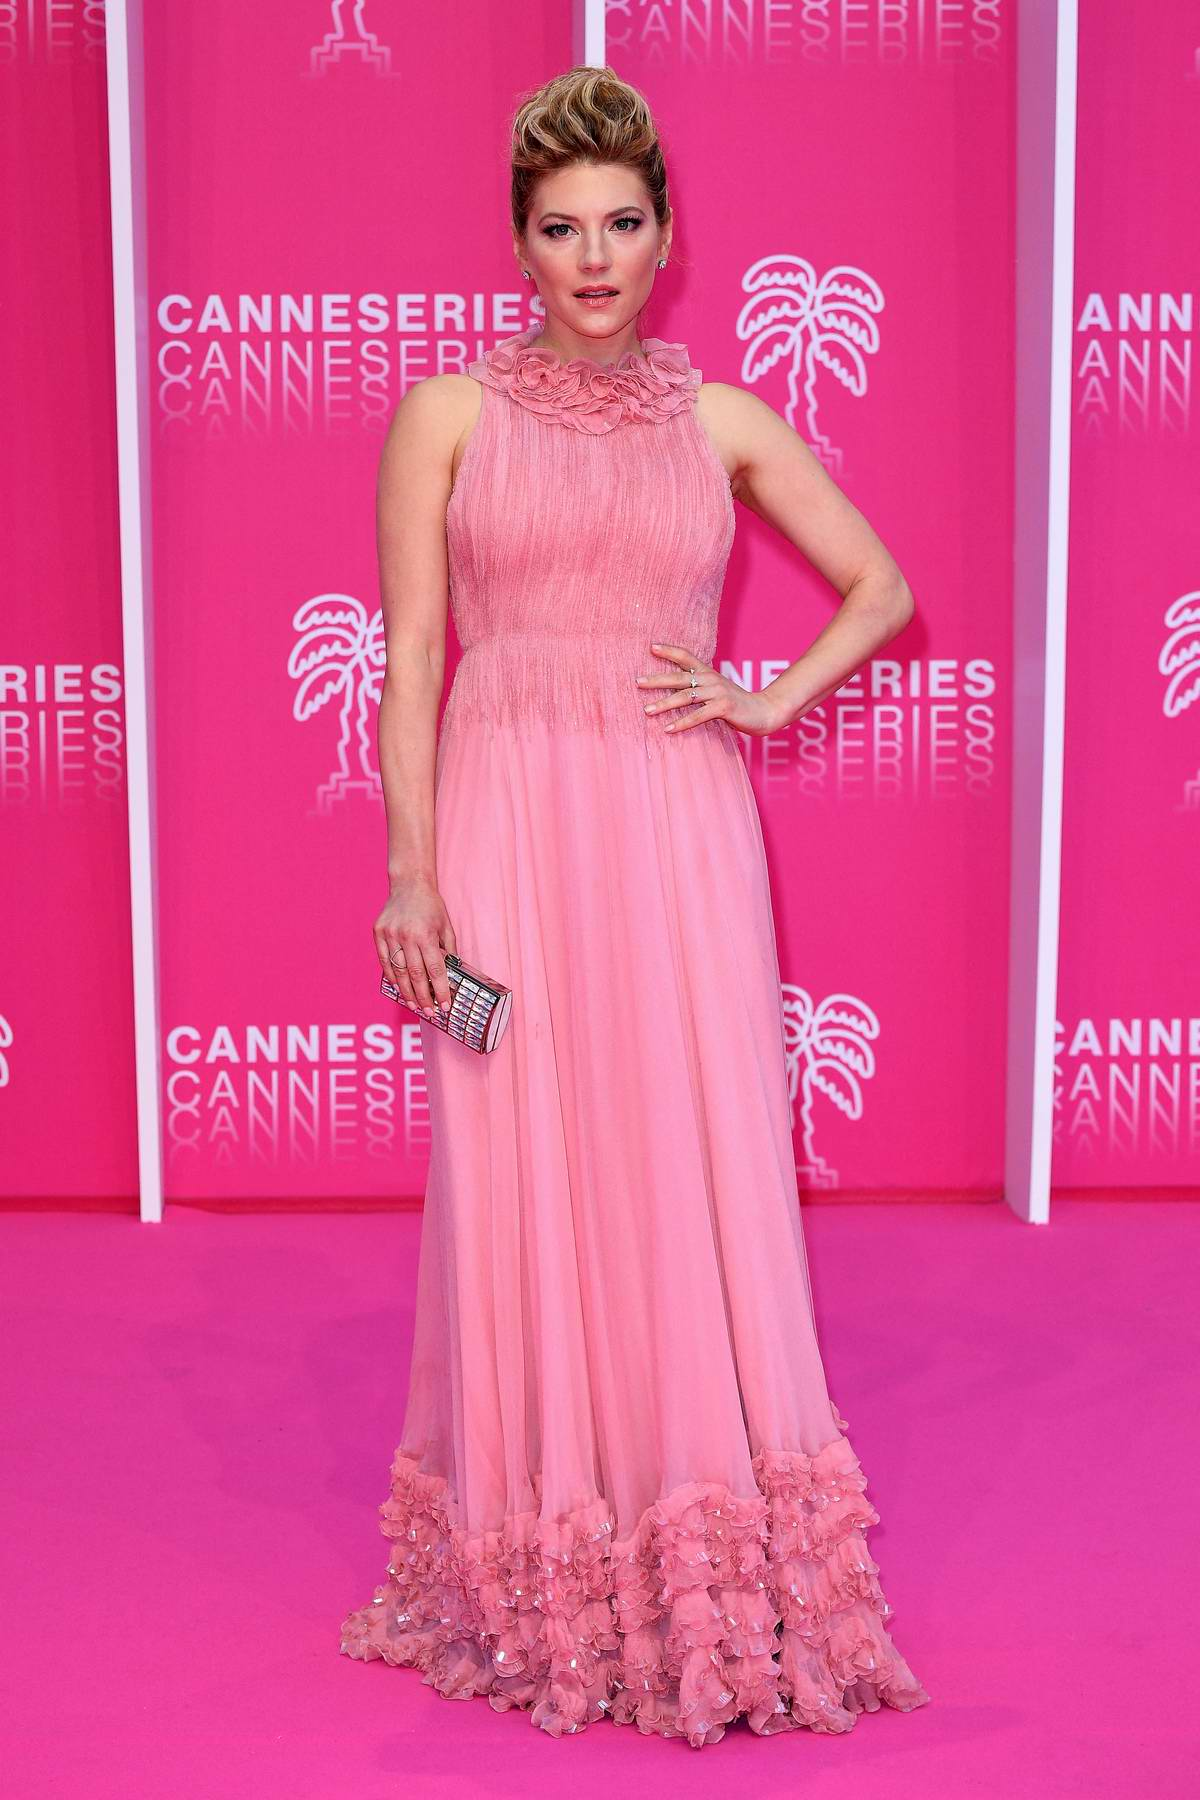 Katheryn Winnick attends the closing ceremony of the 2019 Cannes International Series festival in Cannes, France